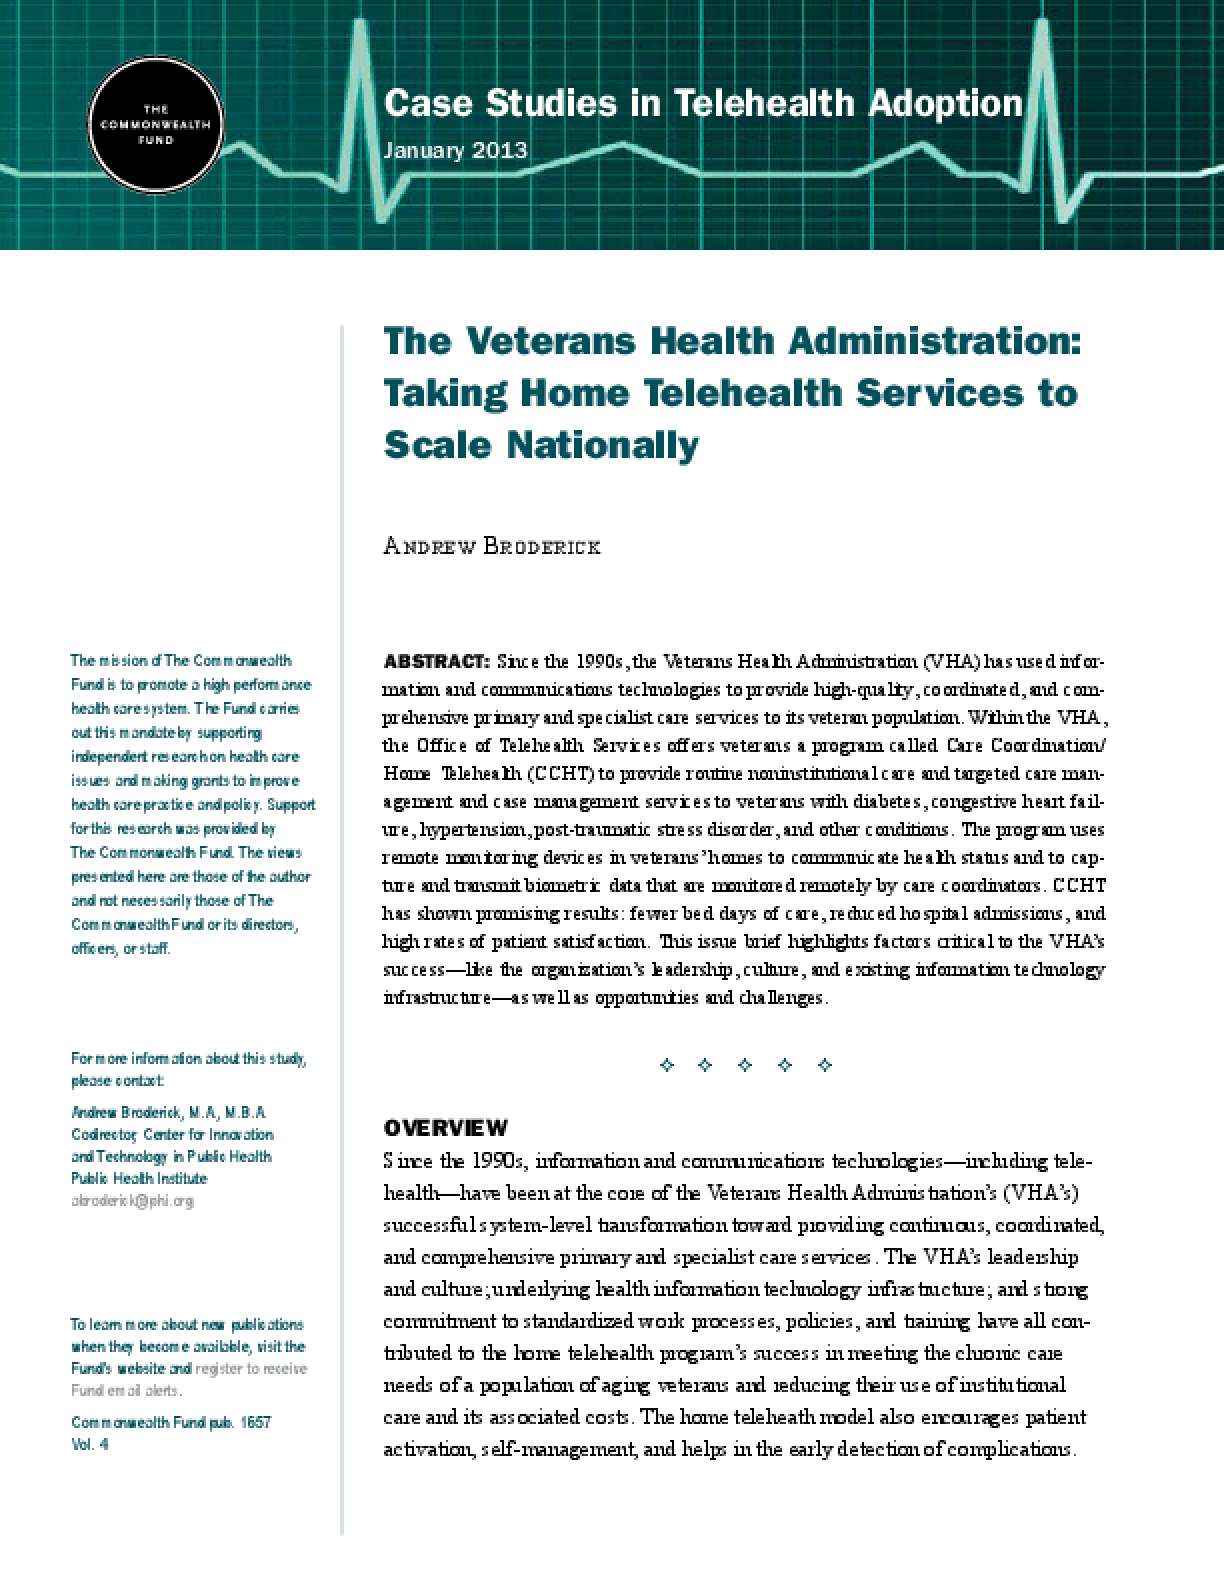 The Veterans Health Administration: Taking Home Telehealth Services to Scale Nationally